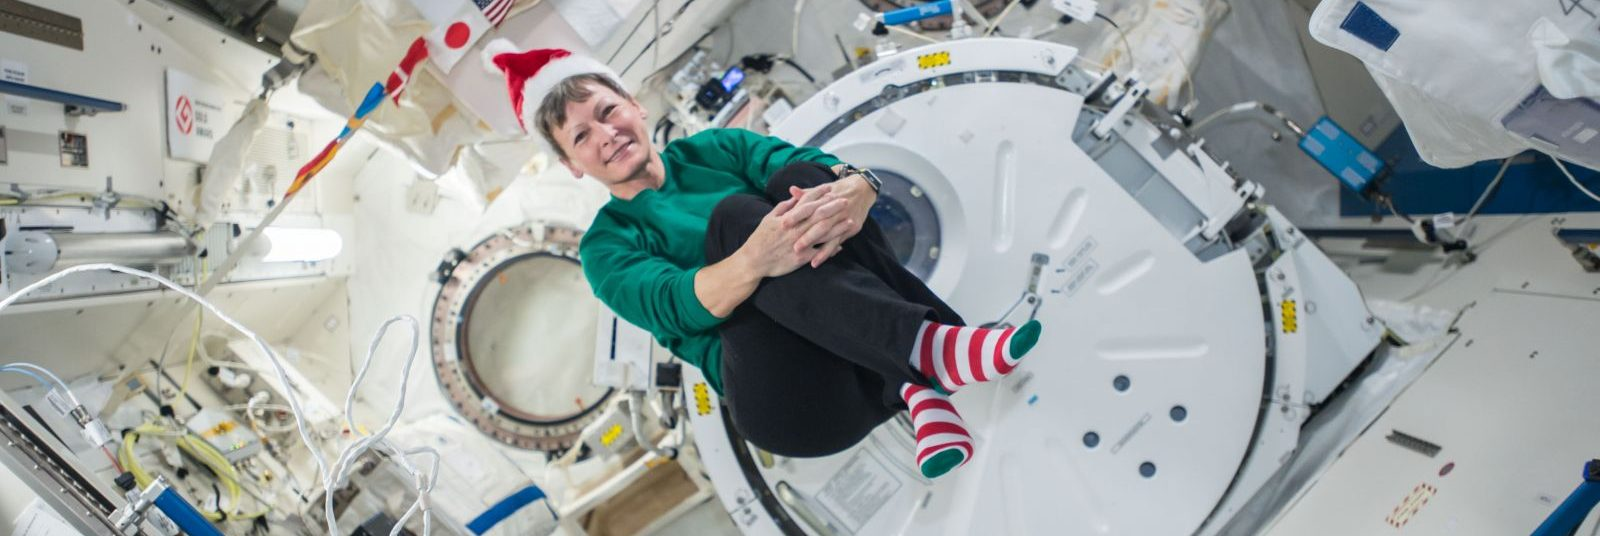 Expedition 50 astronaut Peggy Whitson sent a festive photo to those on the ground. She and Tomas Pasquet will perform two critical maintenance spacewalks in the first two weeks of 2017. Photo Credit: NASA